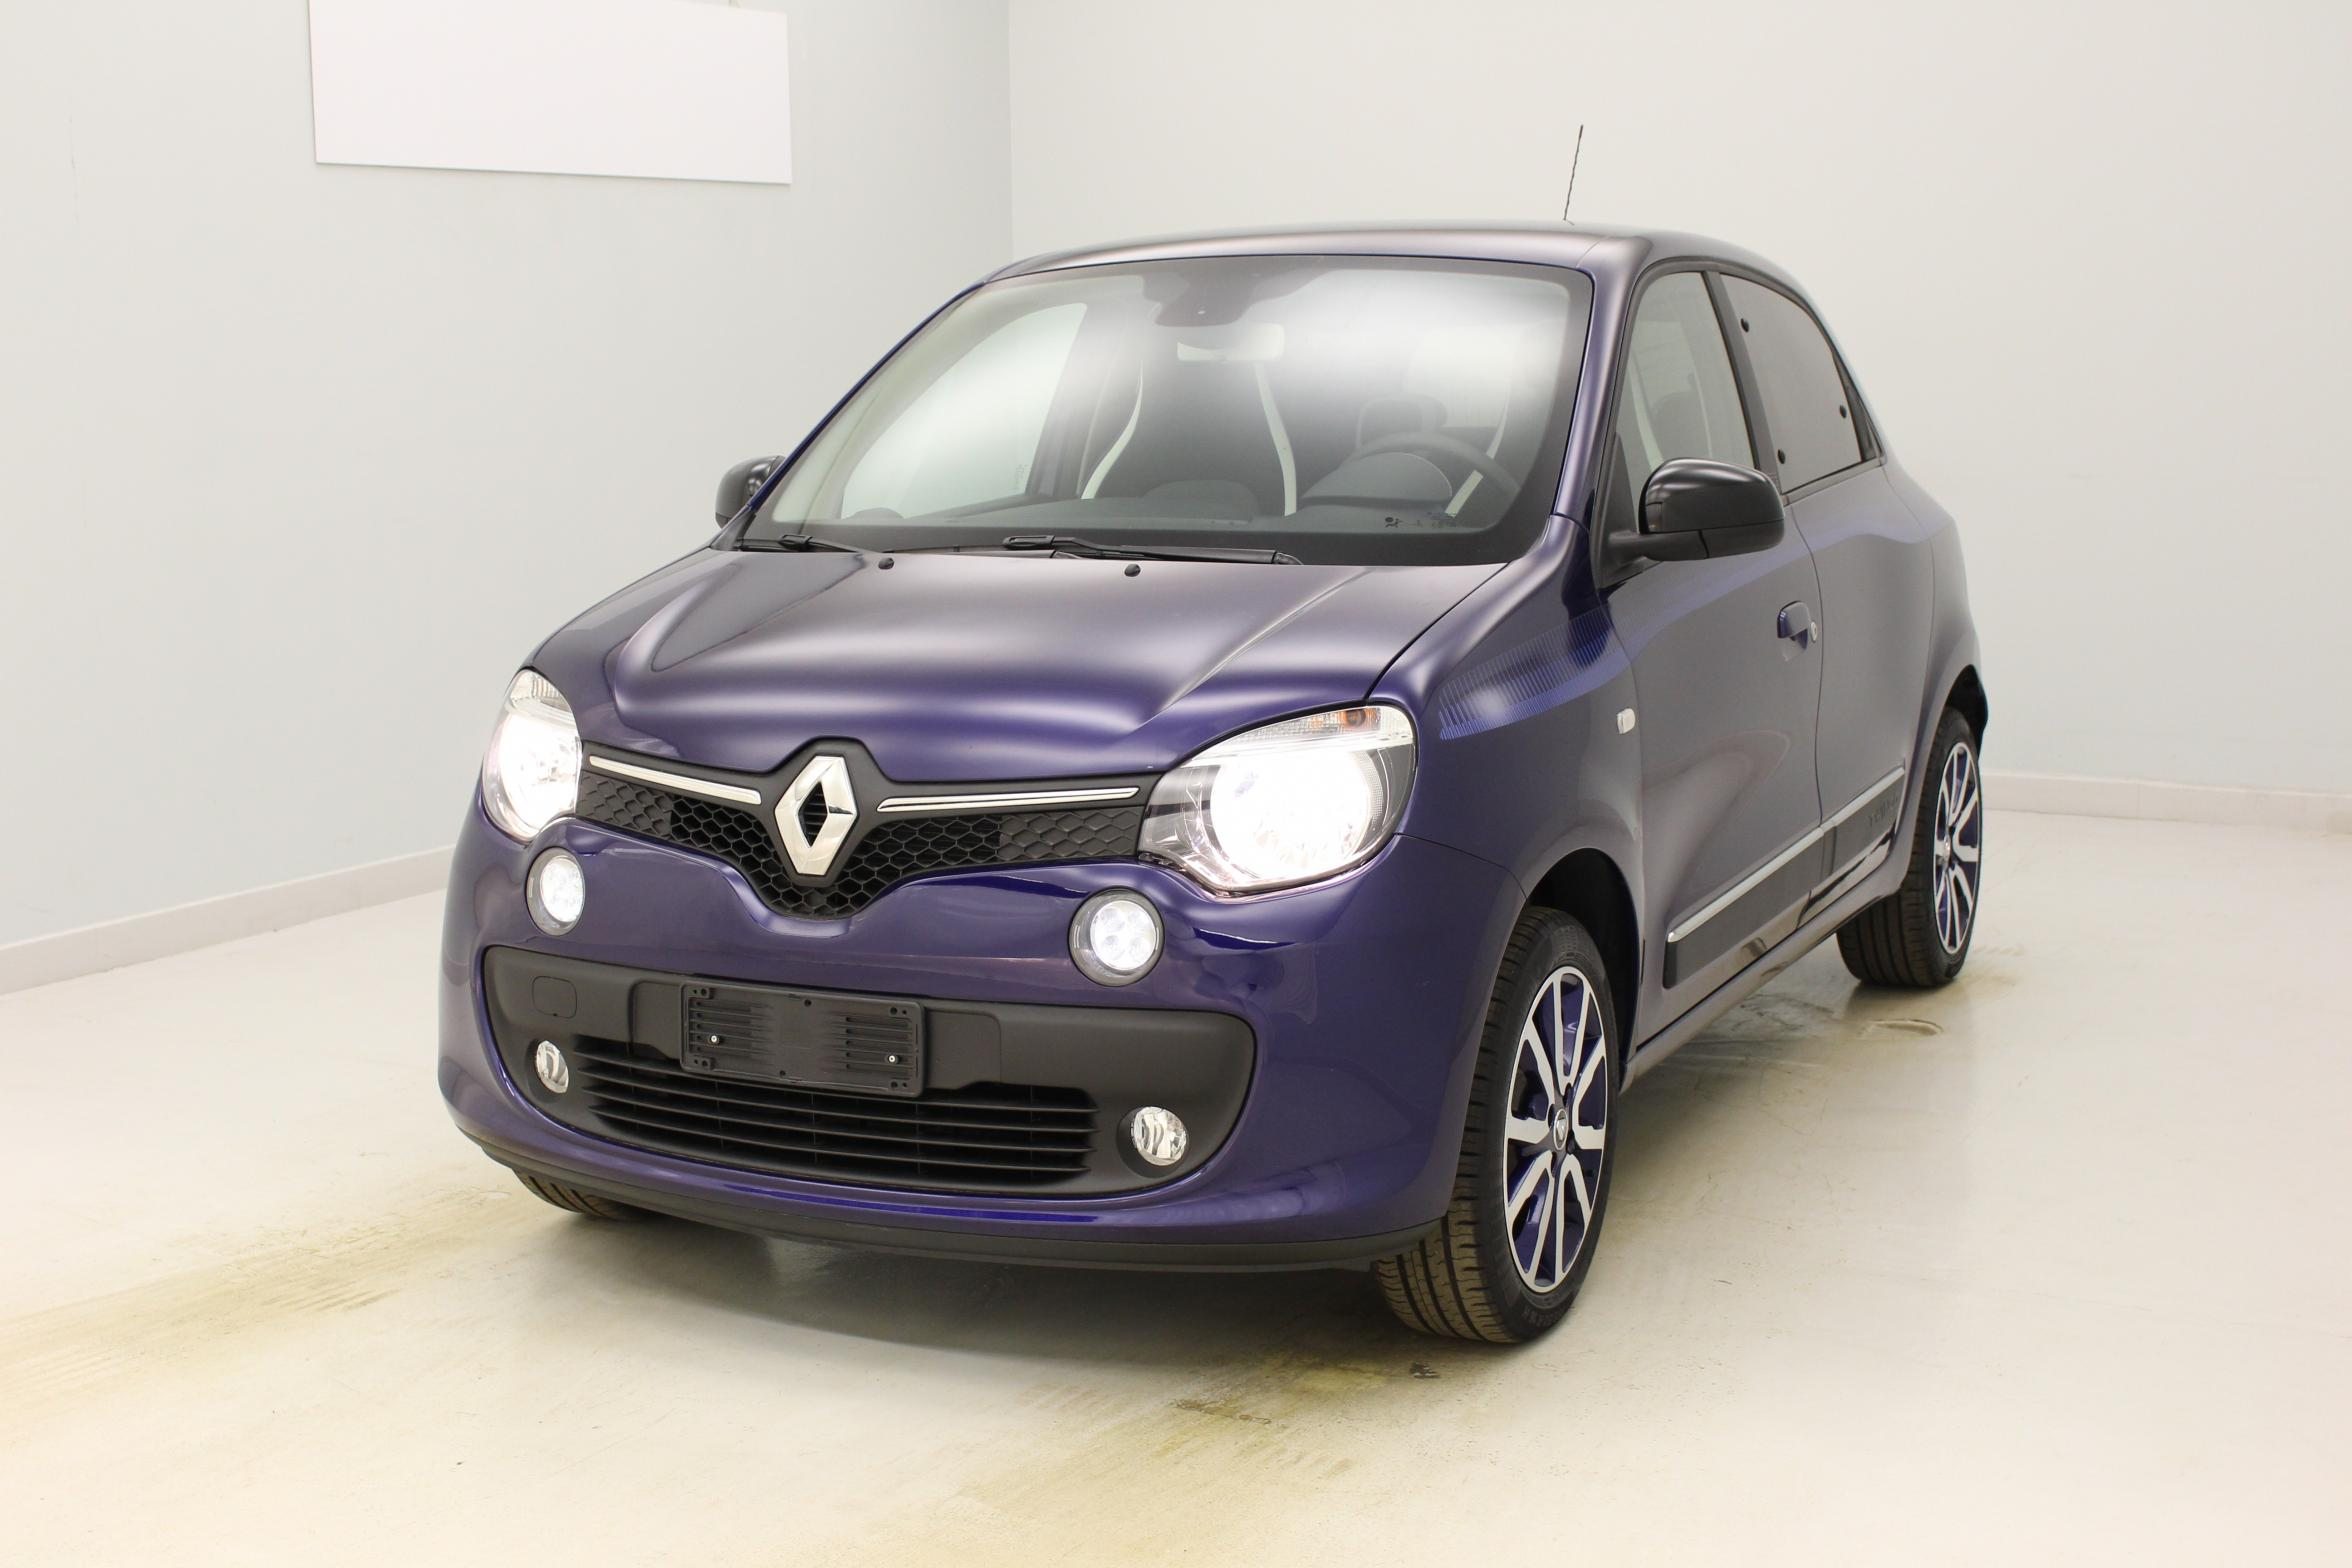 renault nouvelle twingo 1 0 sce 70 eco2 stop start intens ultra violet v hicule d 39 occasion. Black Bedroom Furniture Sets. Home Design Ideas